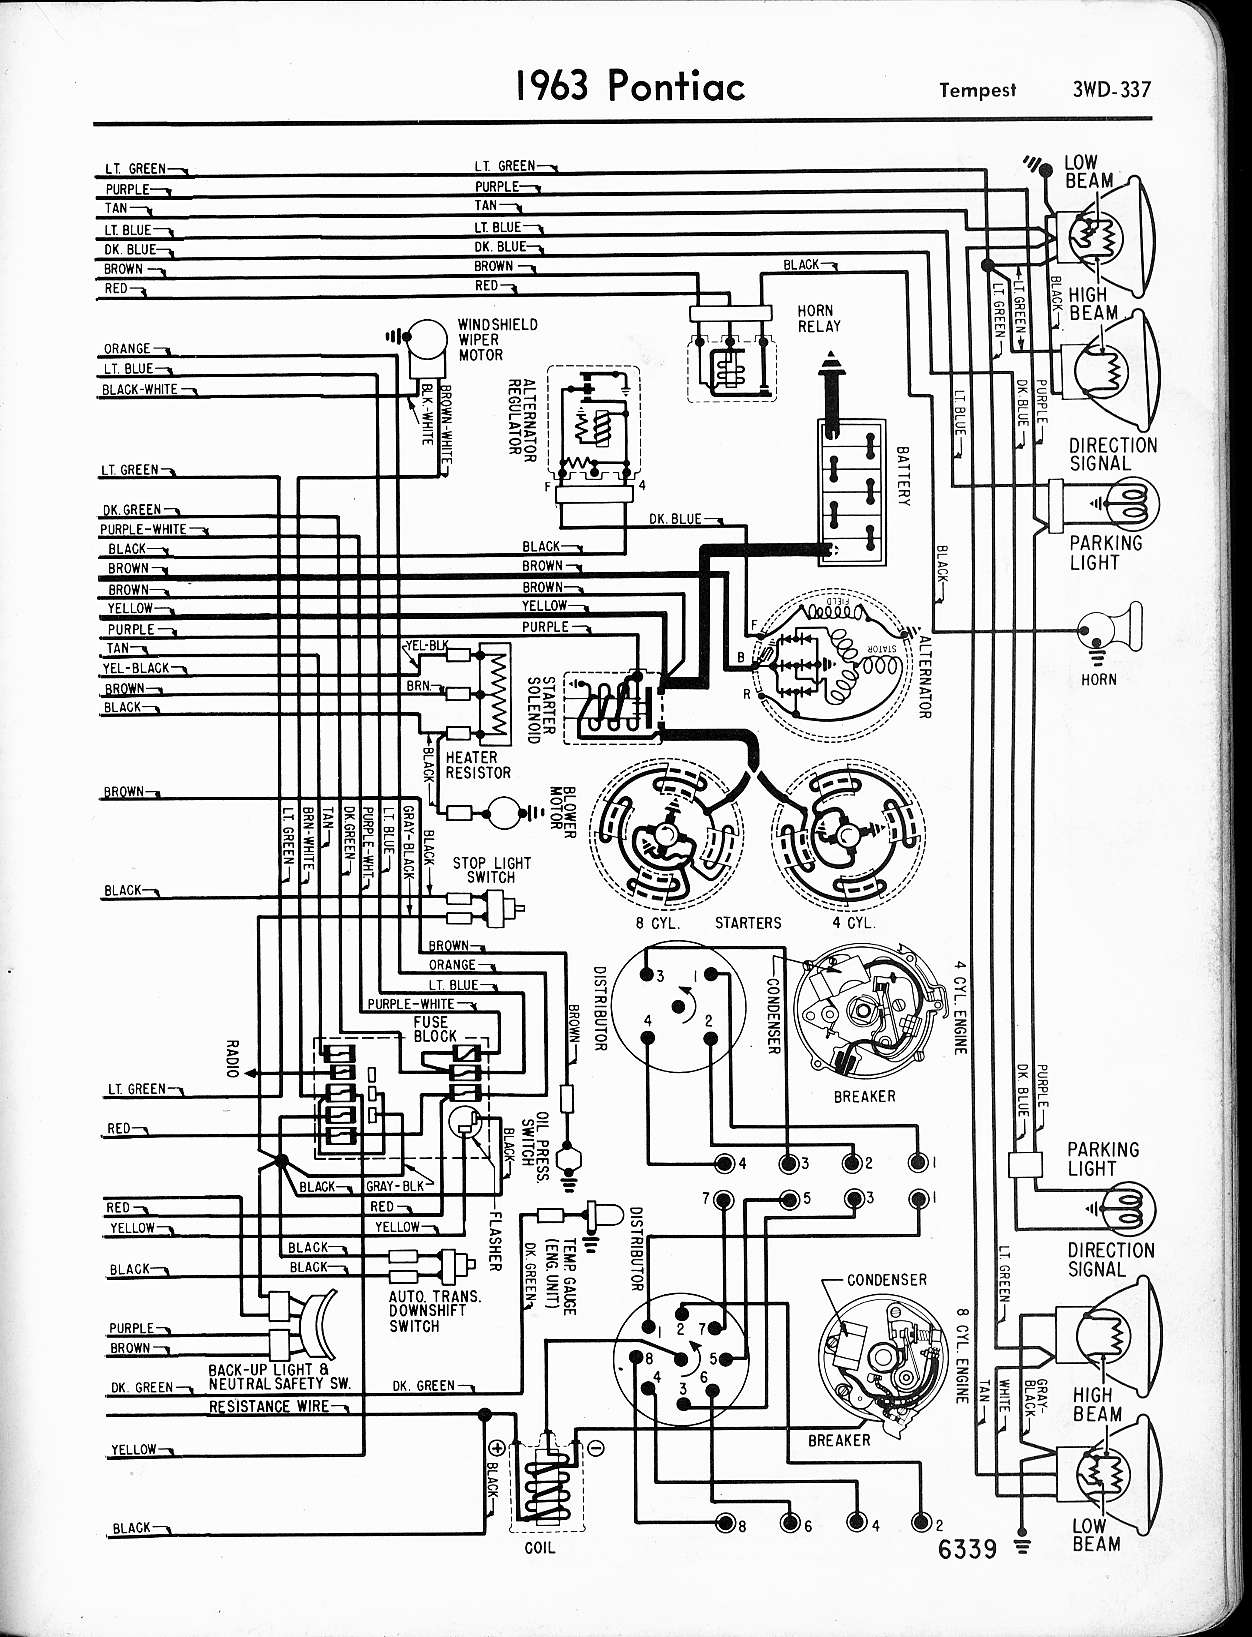 63 corvette horn wiring diagram schematics wiring diagrams u2022 rh  parntesis co 79 Corvette Wiring Diagram 79 Corvette Wiring Diagram